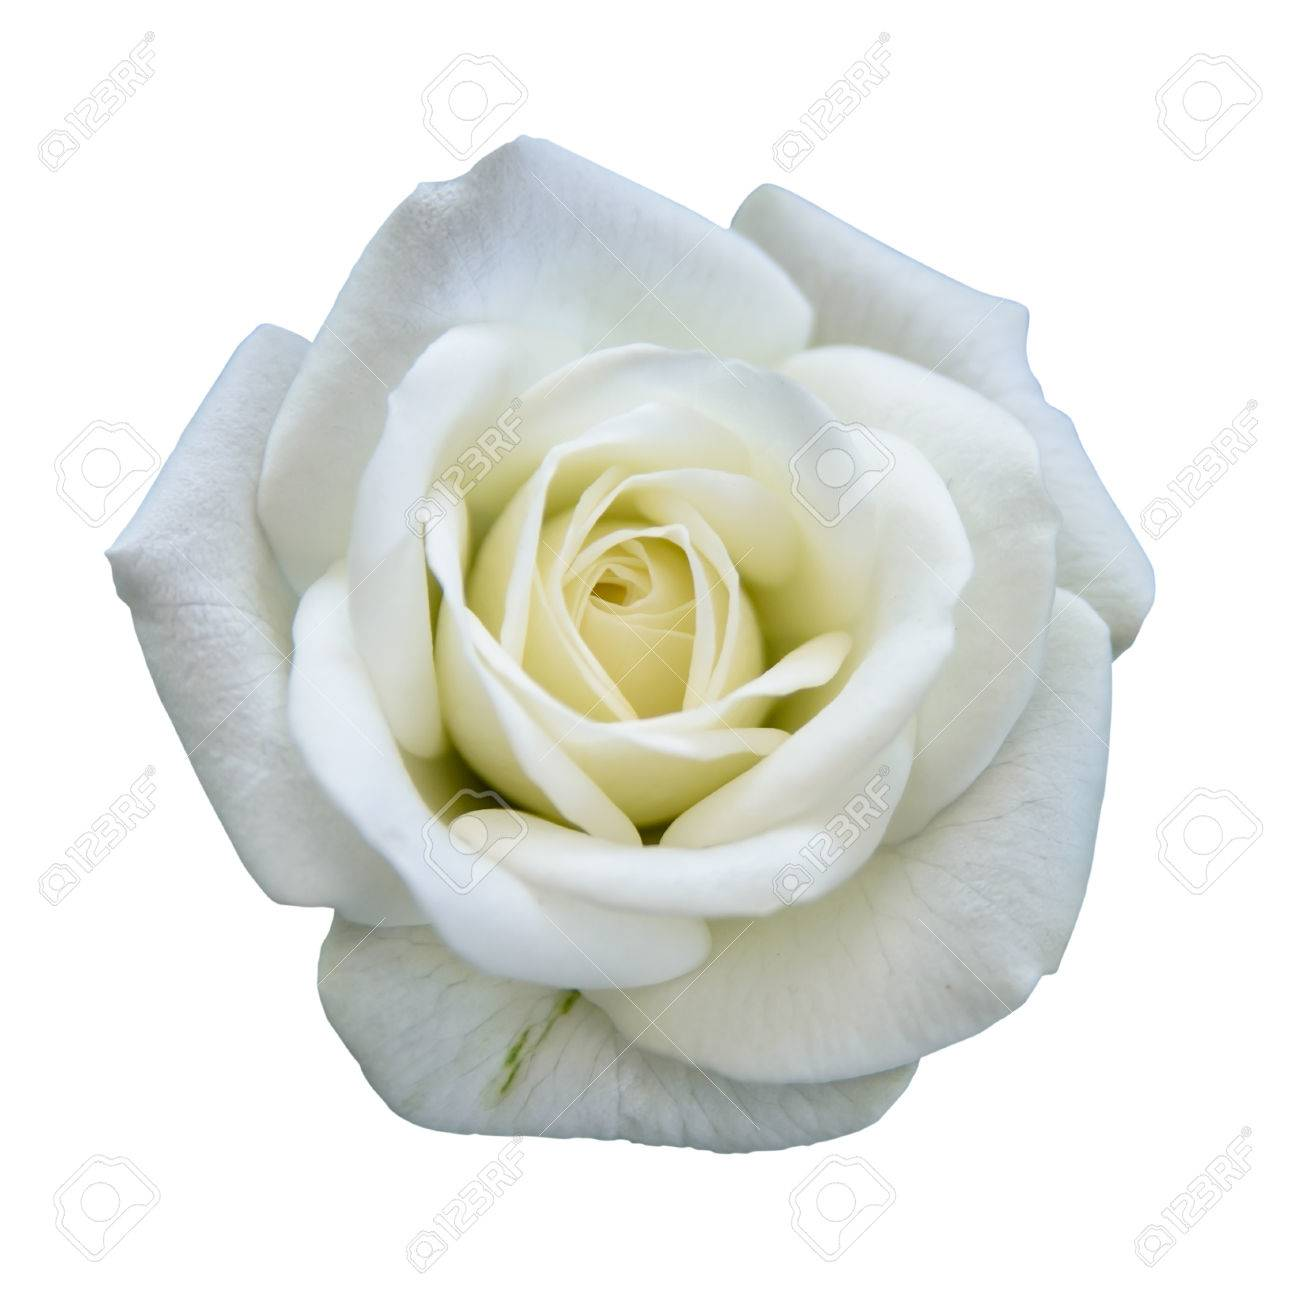 White Rose Stock Photos Royalty Free White Rose Images